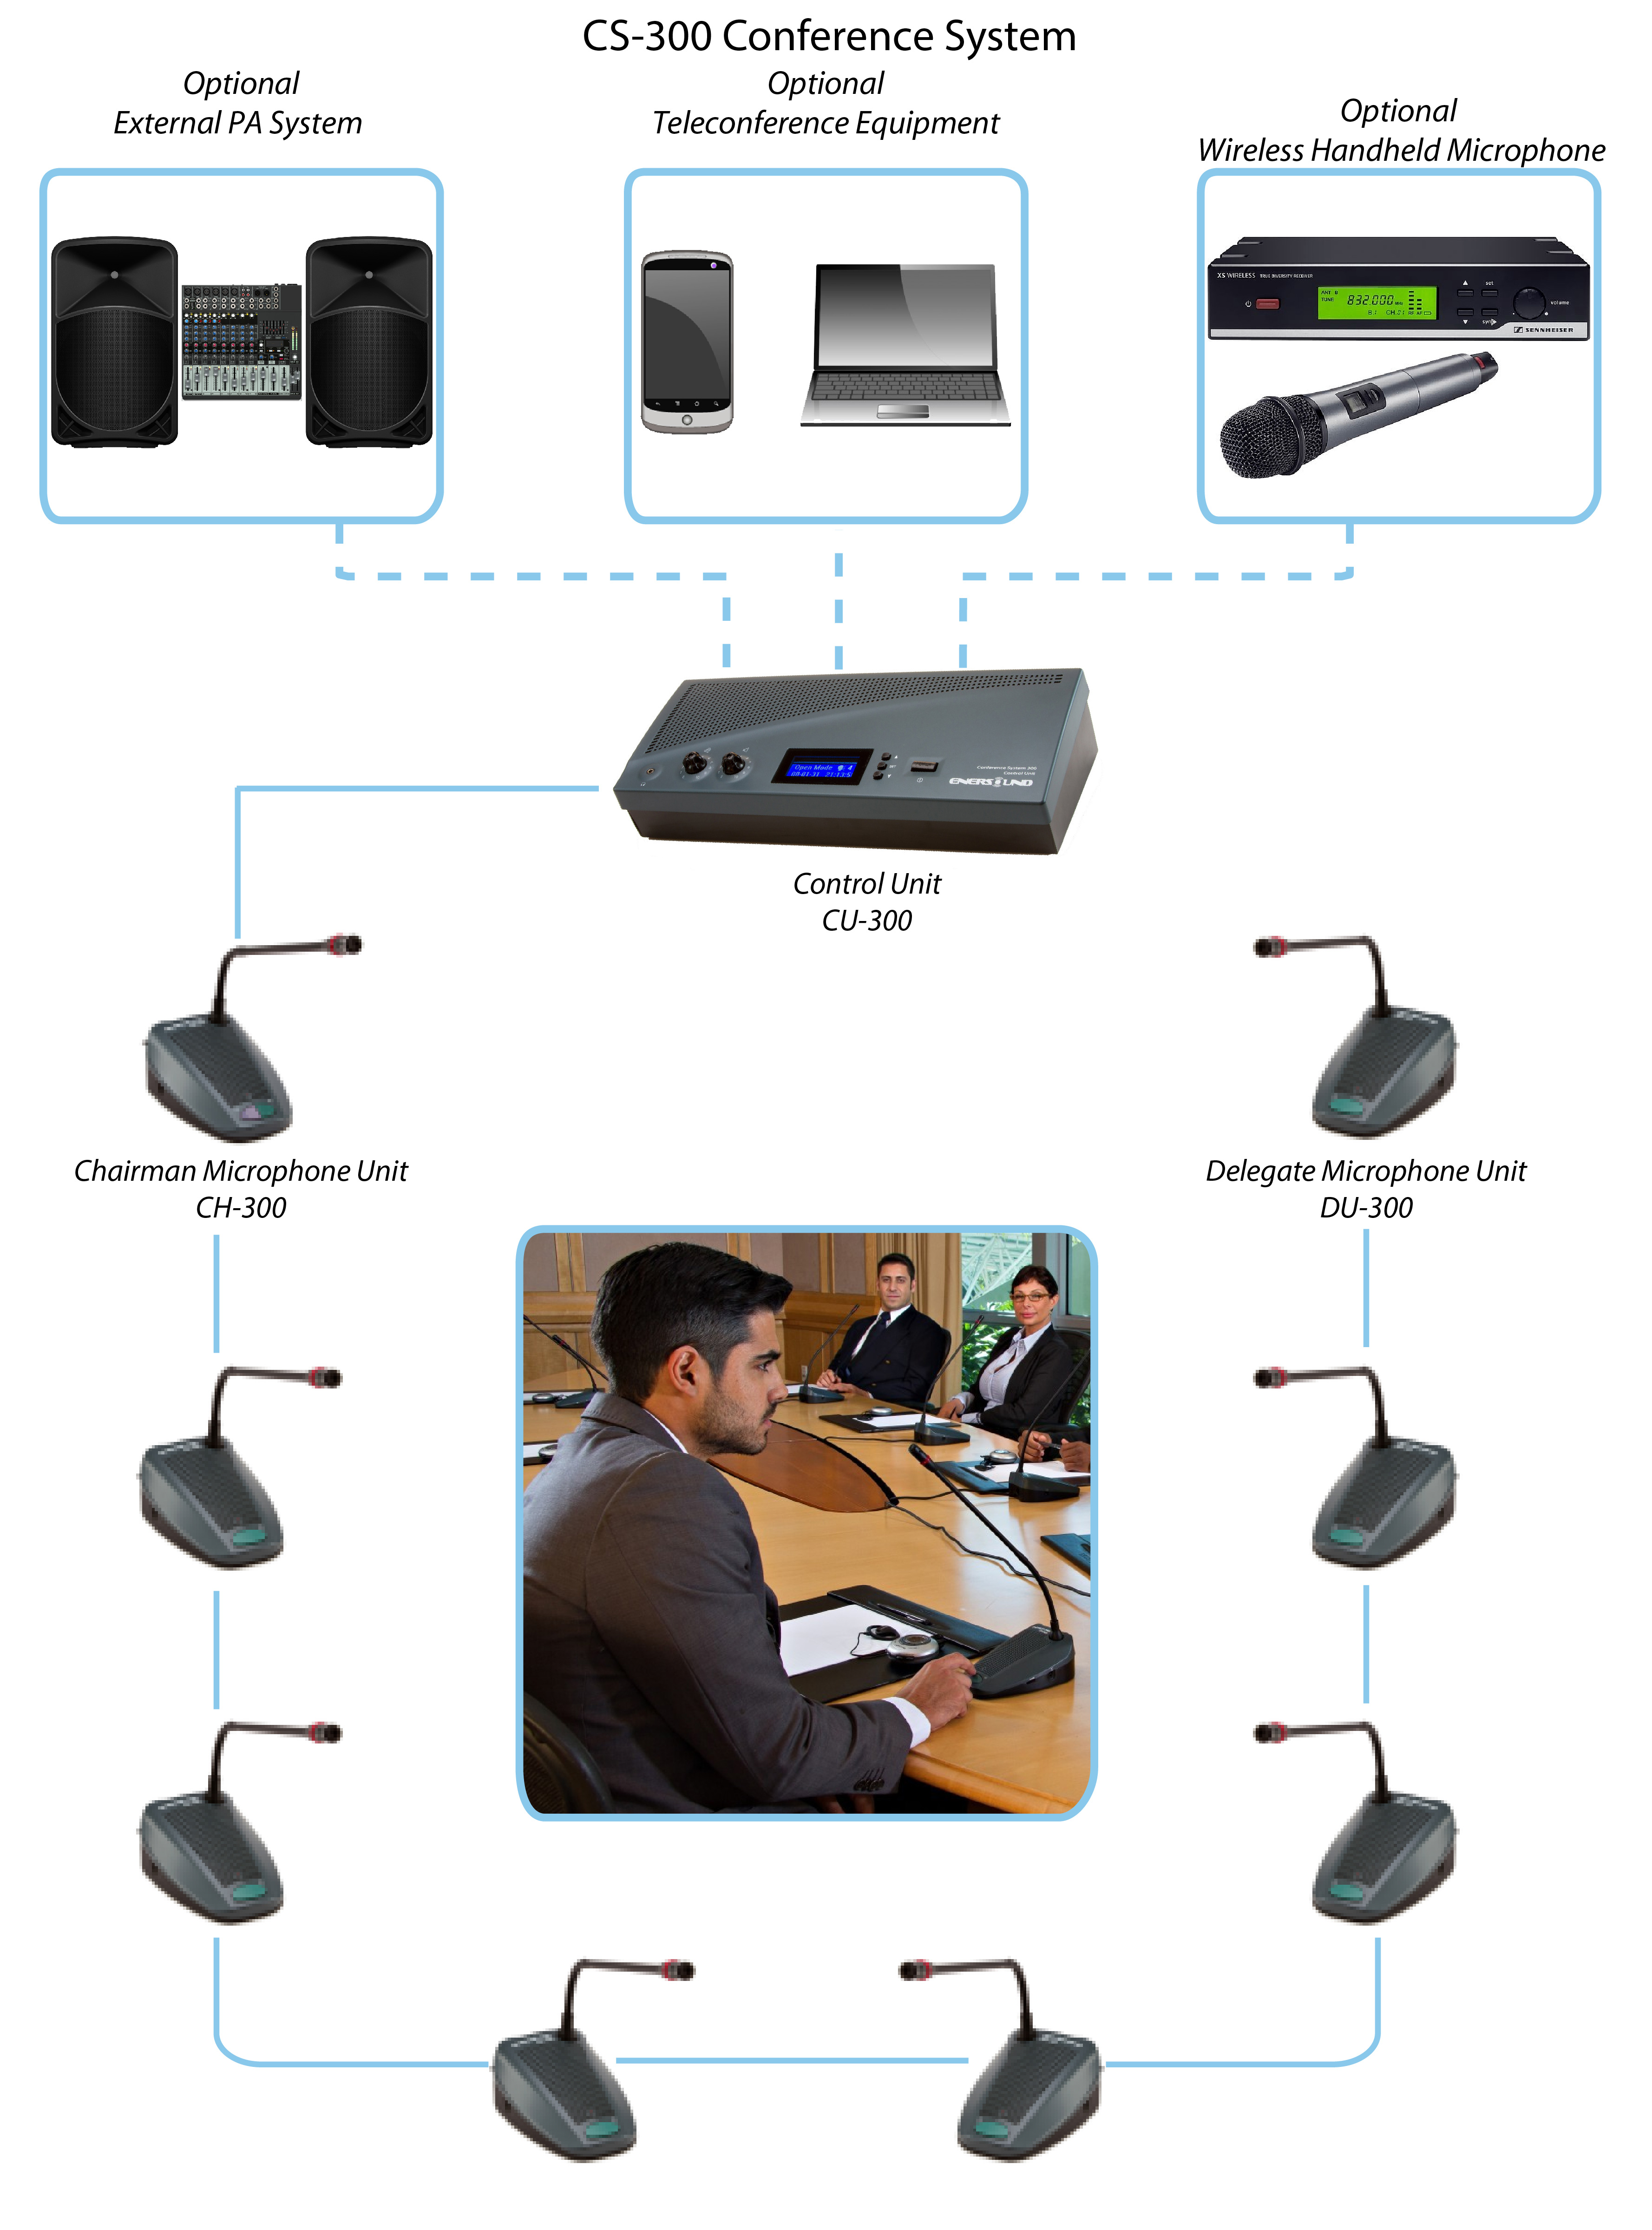 diagram-of-cs-300-conference-system-01.jpg